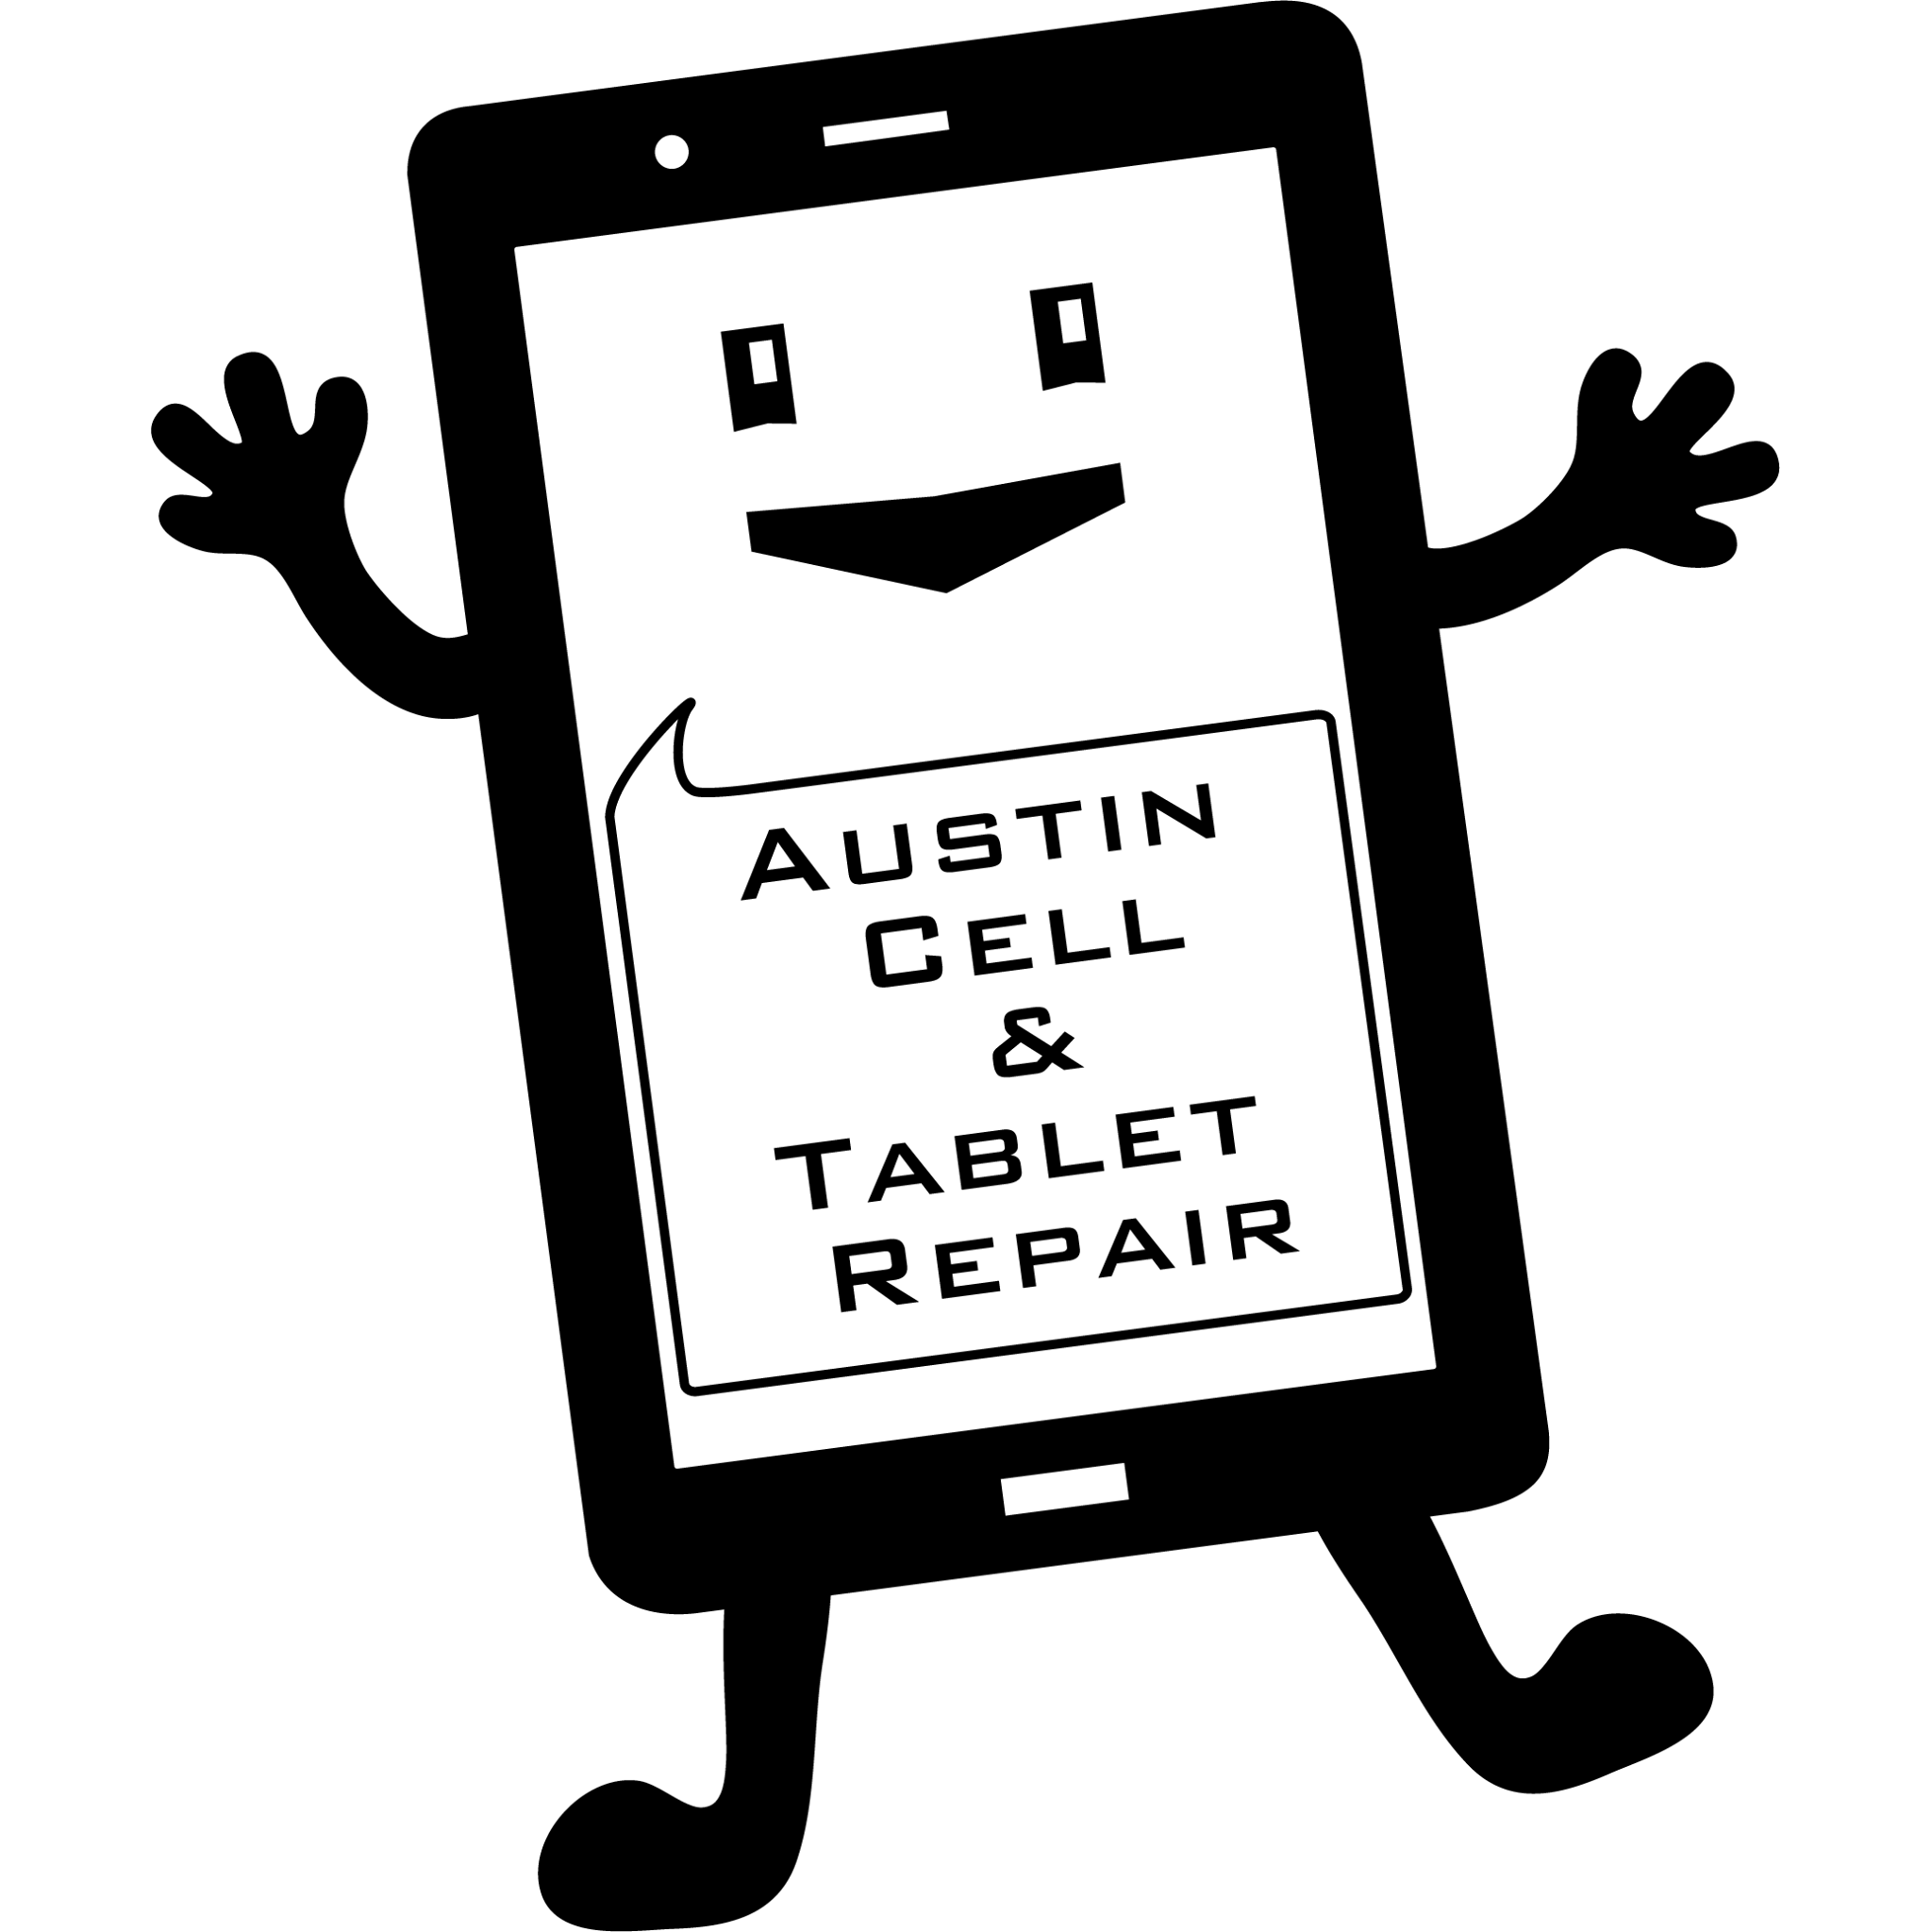 Austin Cell and Tablet Repair